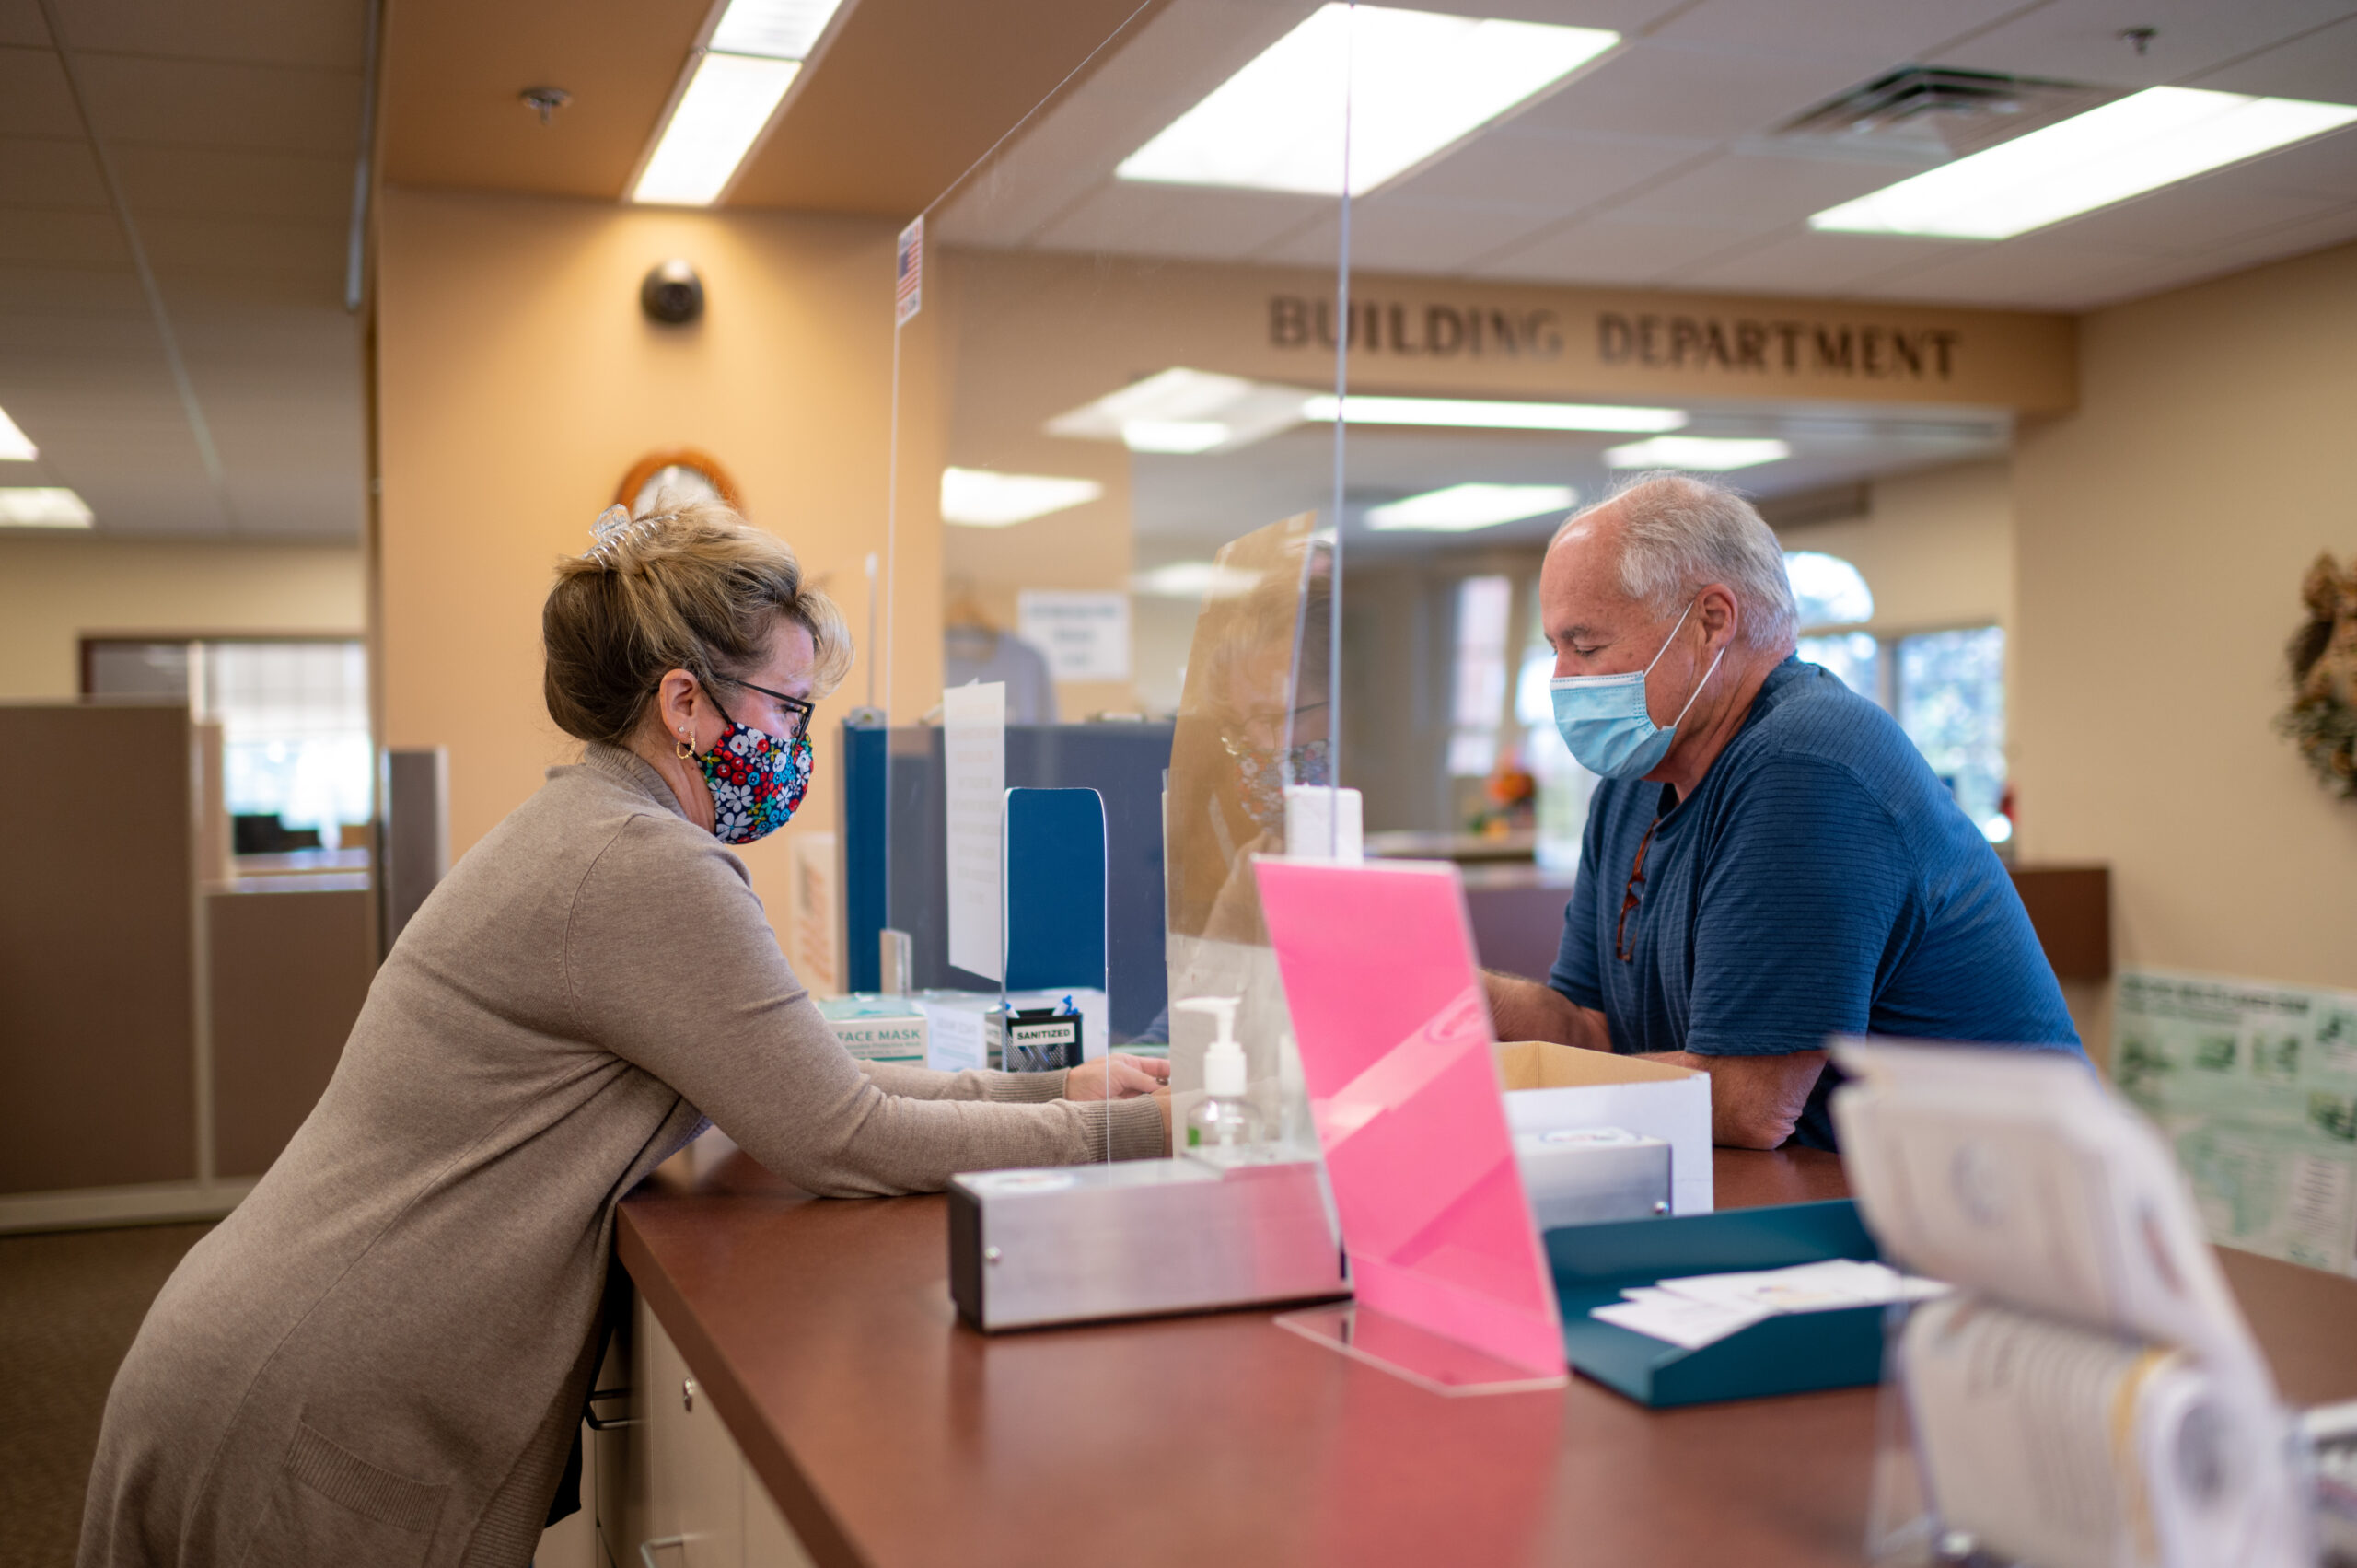 Kelly Richter, the clerk's office administrative assistant in Oxford Township, assists a resident at the public counter. Image credit: Eric Bronson, Michigan Photography